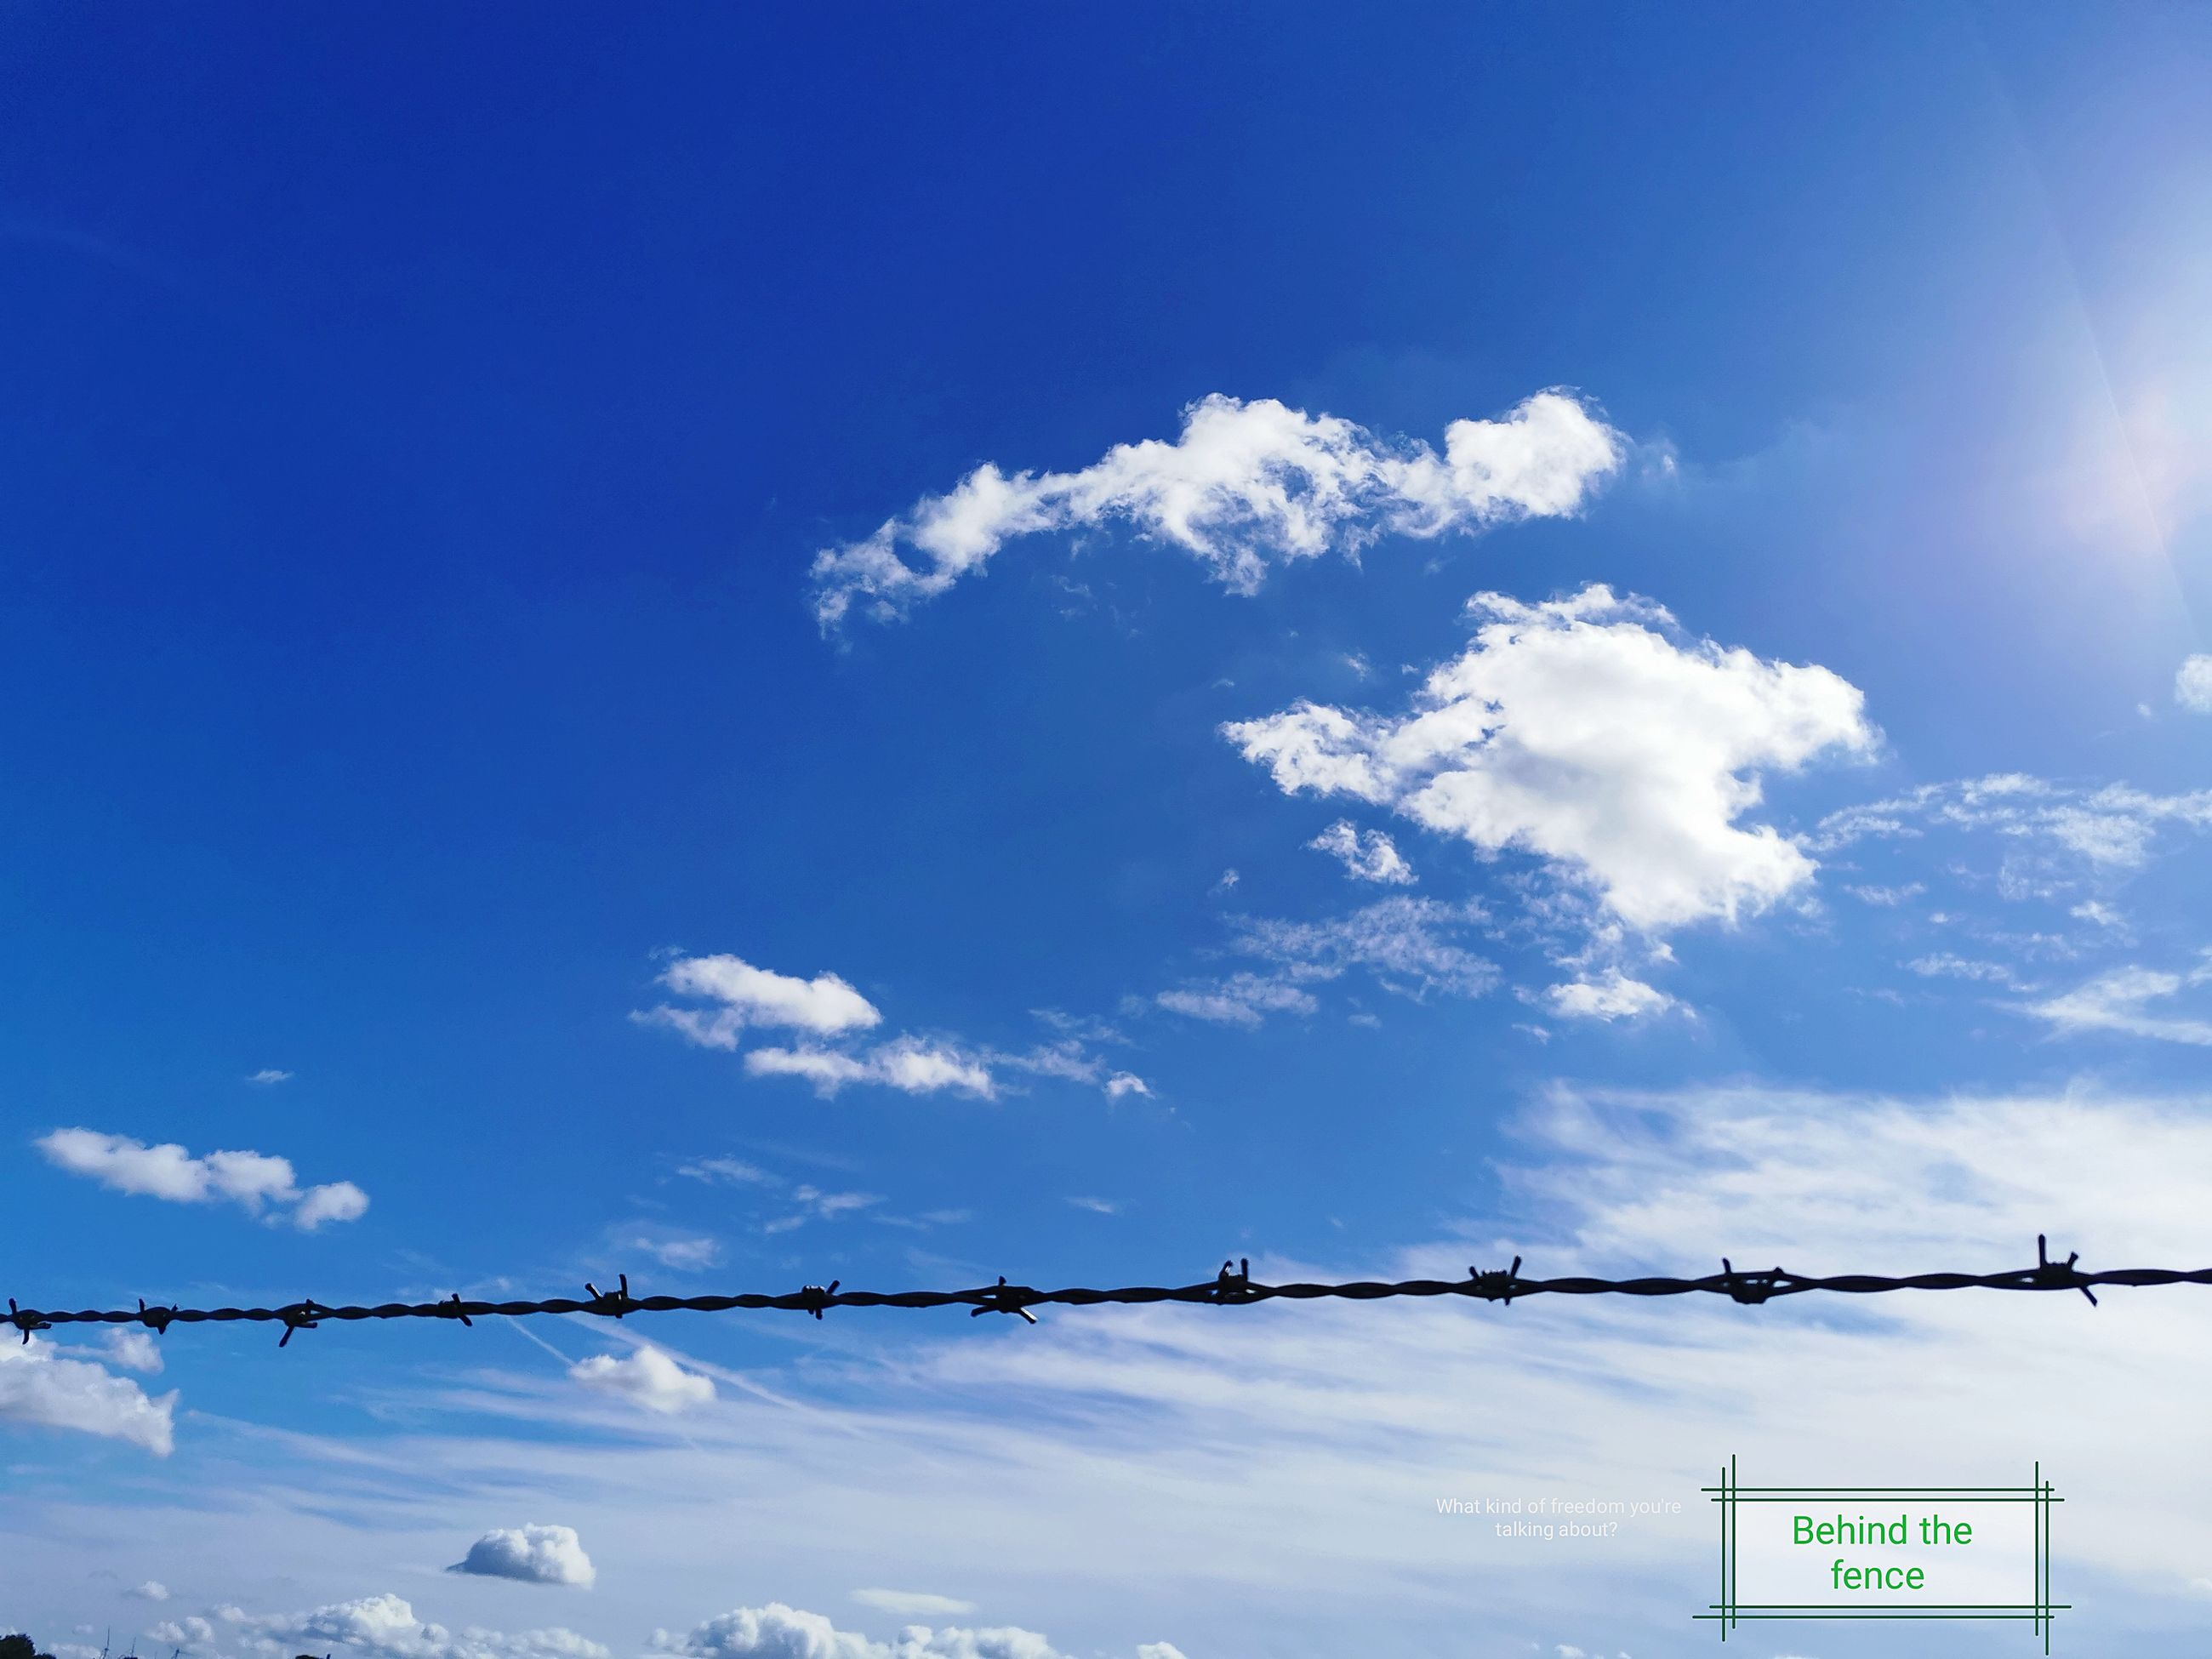 sky, cloud, blue, nature, communication, sunlight, sign, no people, electricity, day, cable, outdoors, horizon, low angle view, technology, text, copy space, guidance, architecture